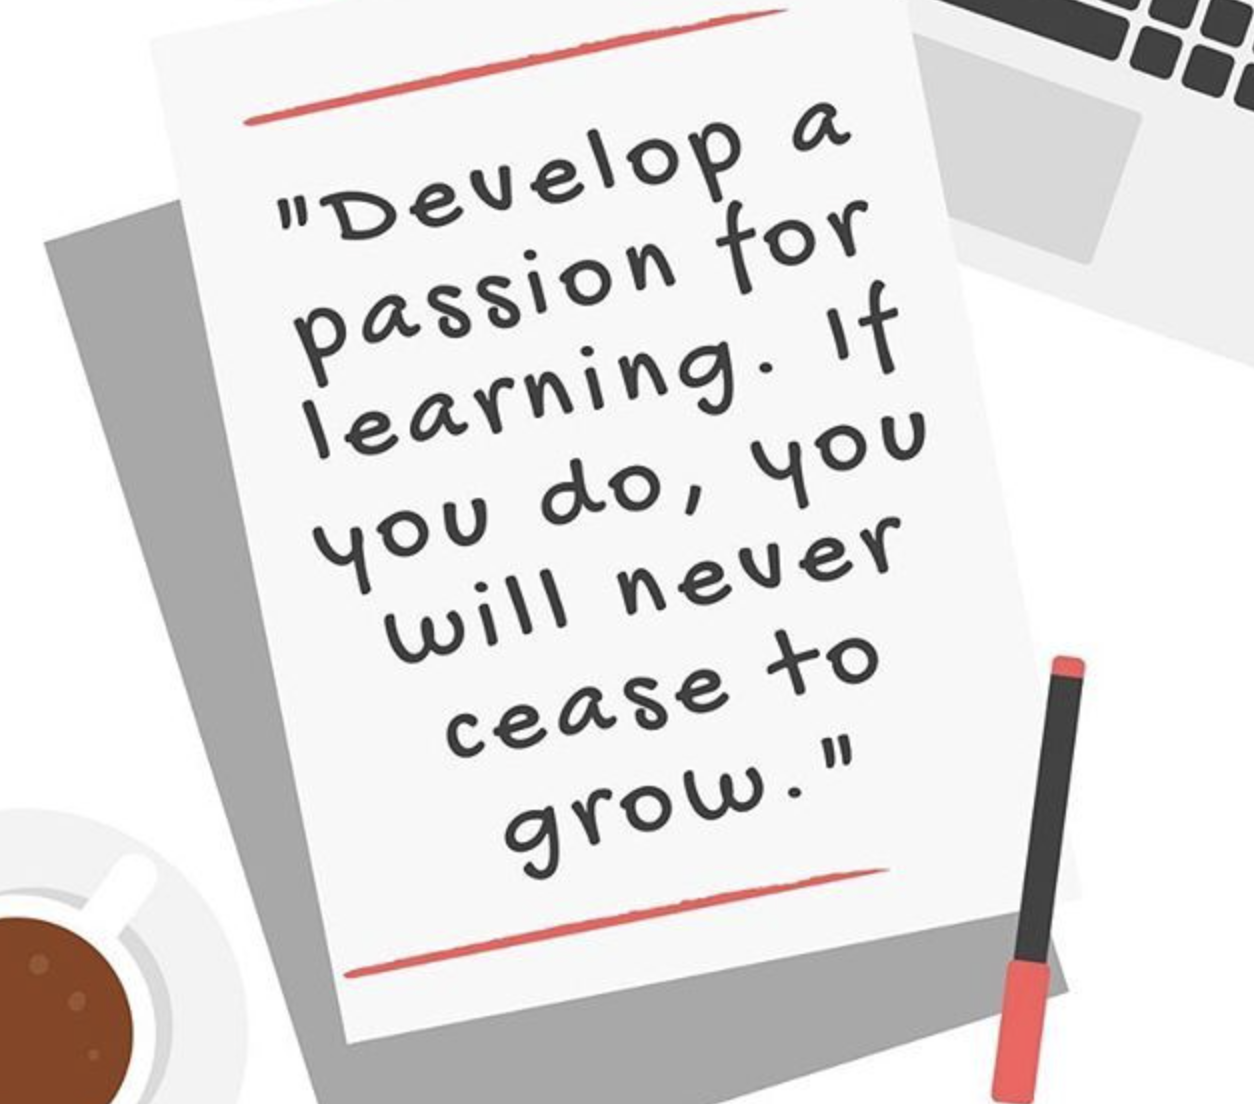 [Image] Develop a passion for learning. If you do you will never cease to grow.